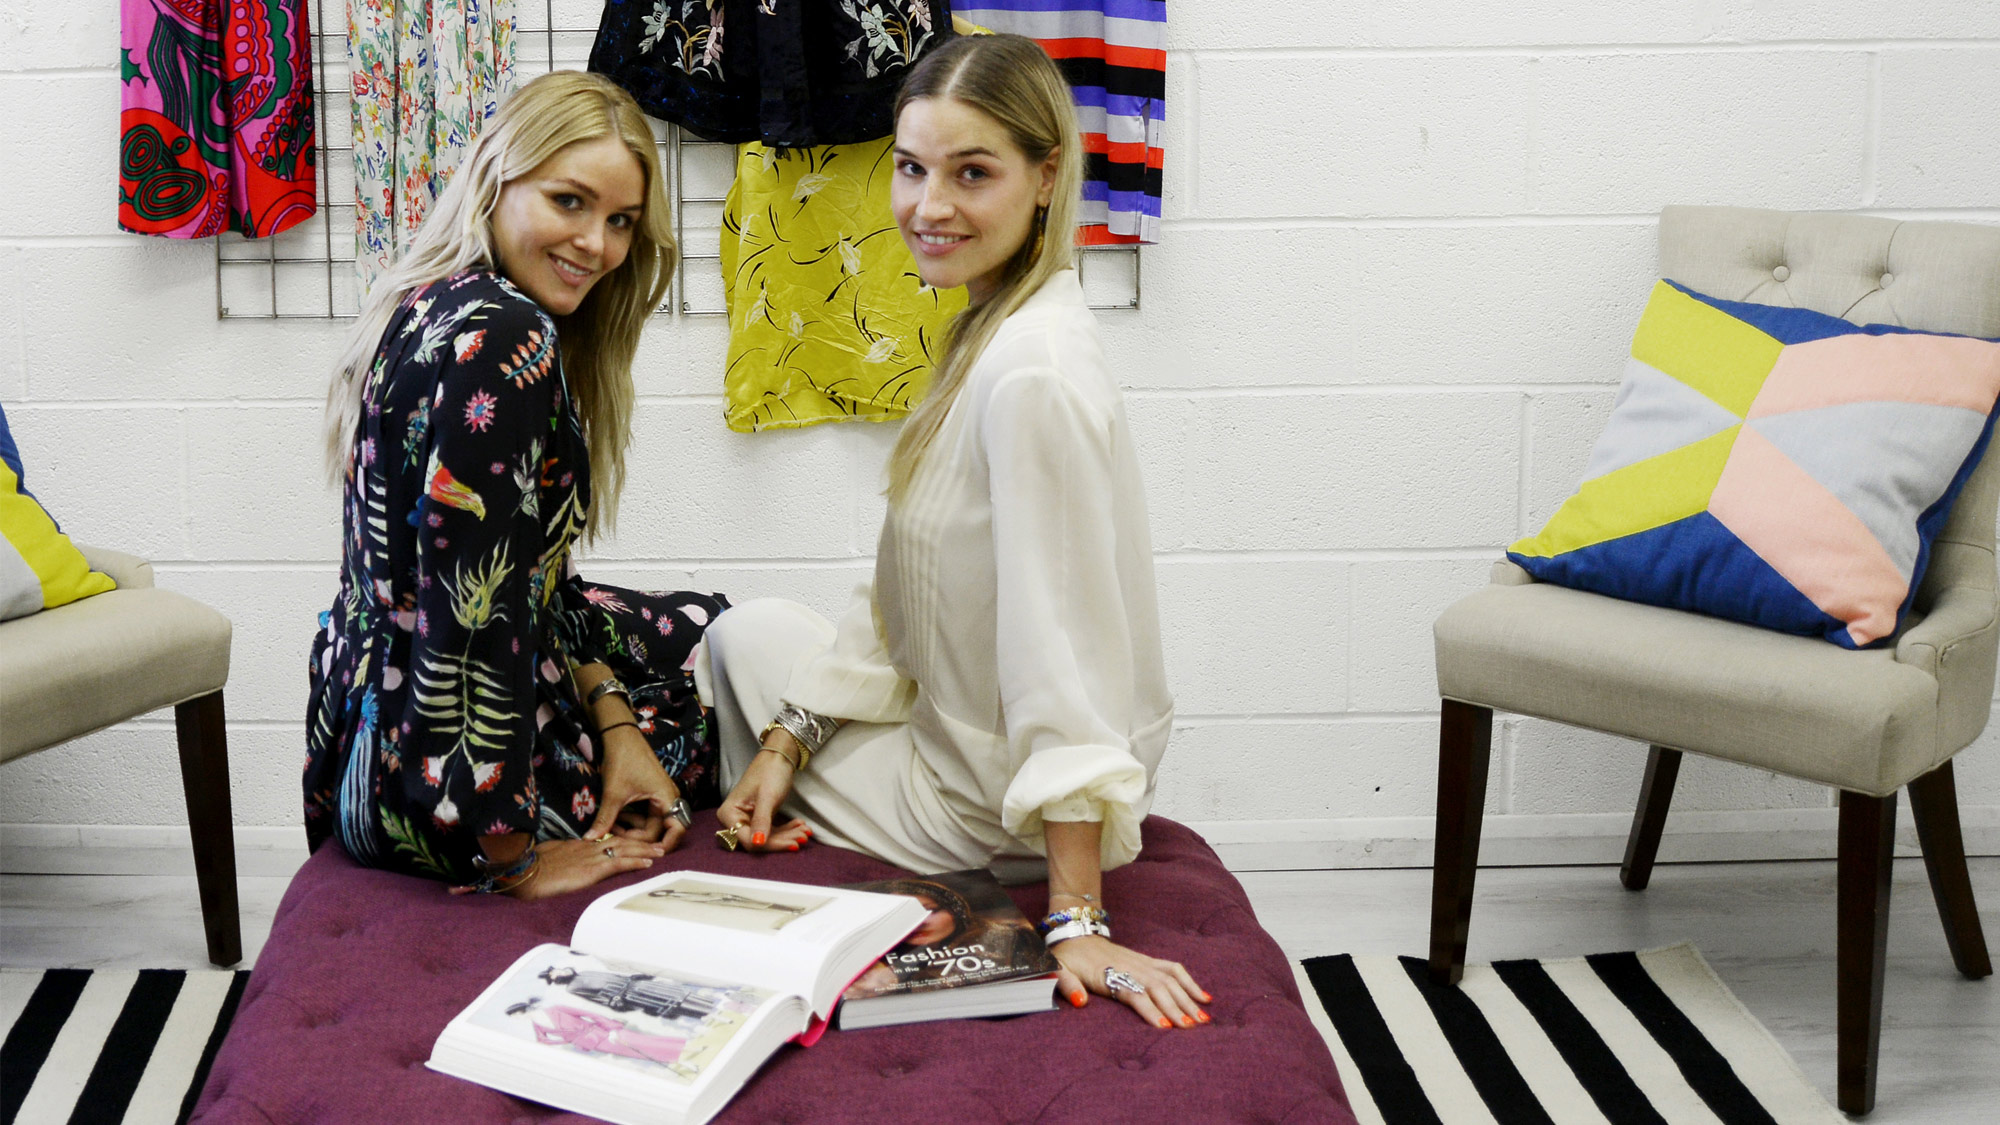 Cult London brand RIXO has some very exciting news for you